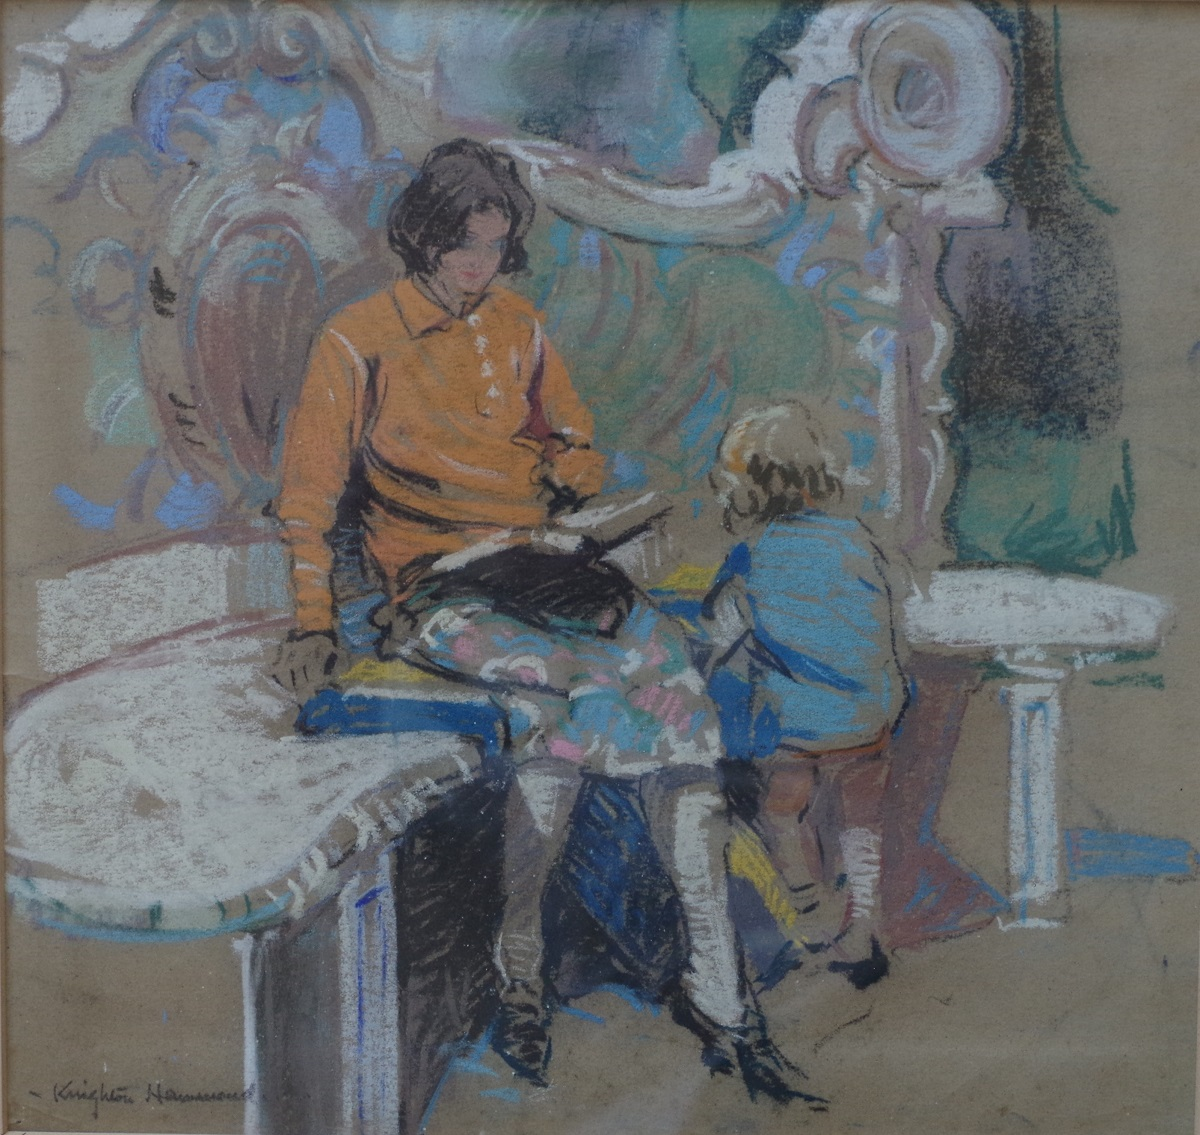 Mary and her mother on a seat